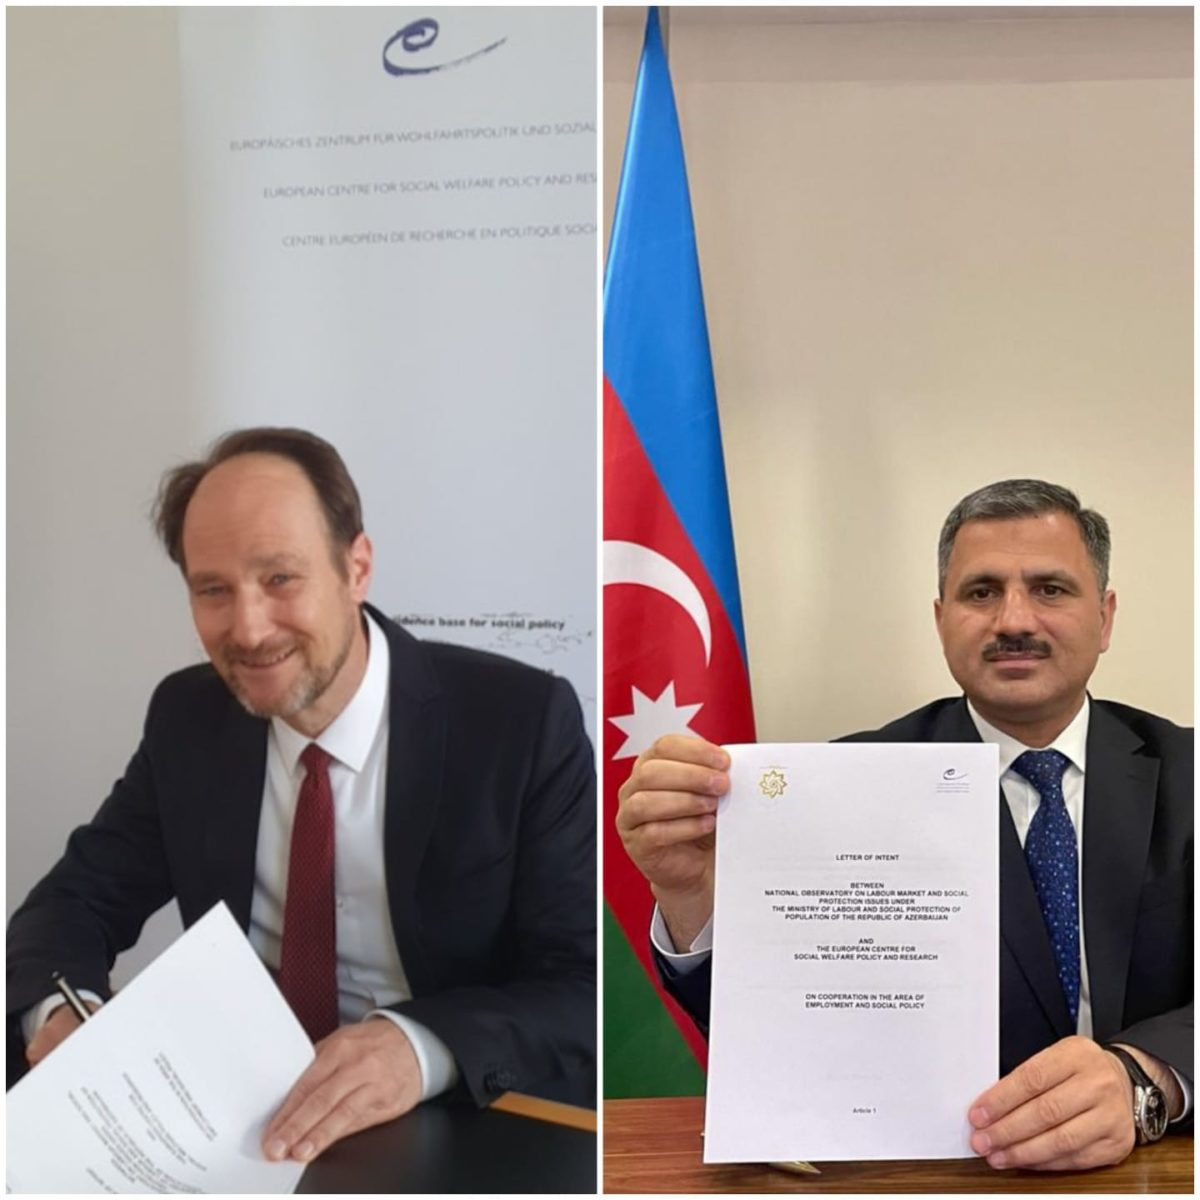 Bridge building: Continued cooperation with Azerbaijan